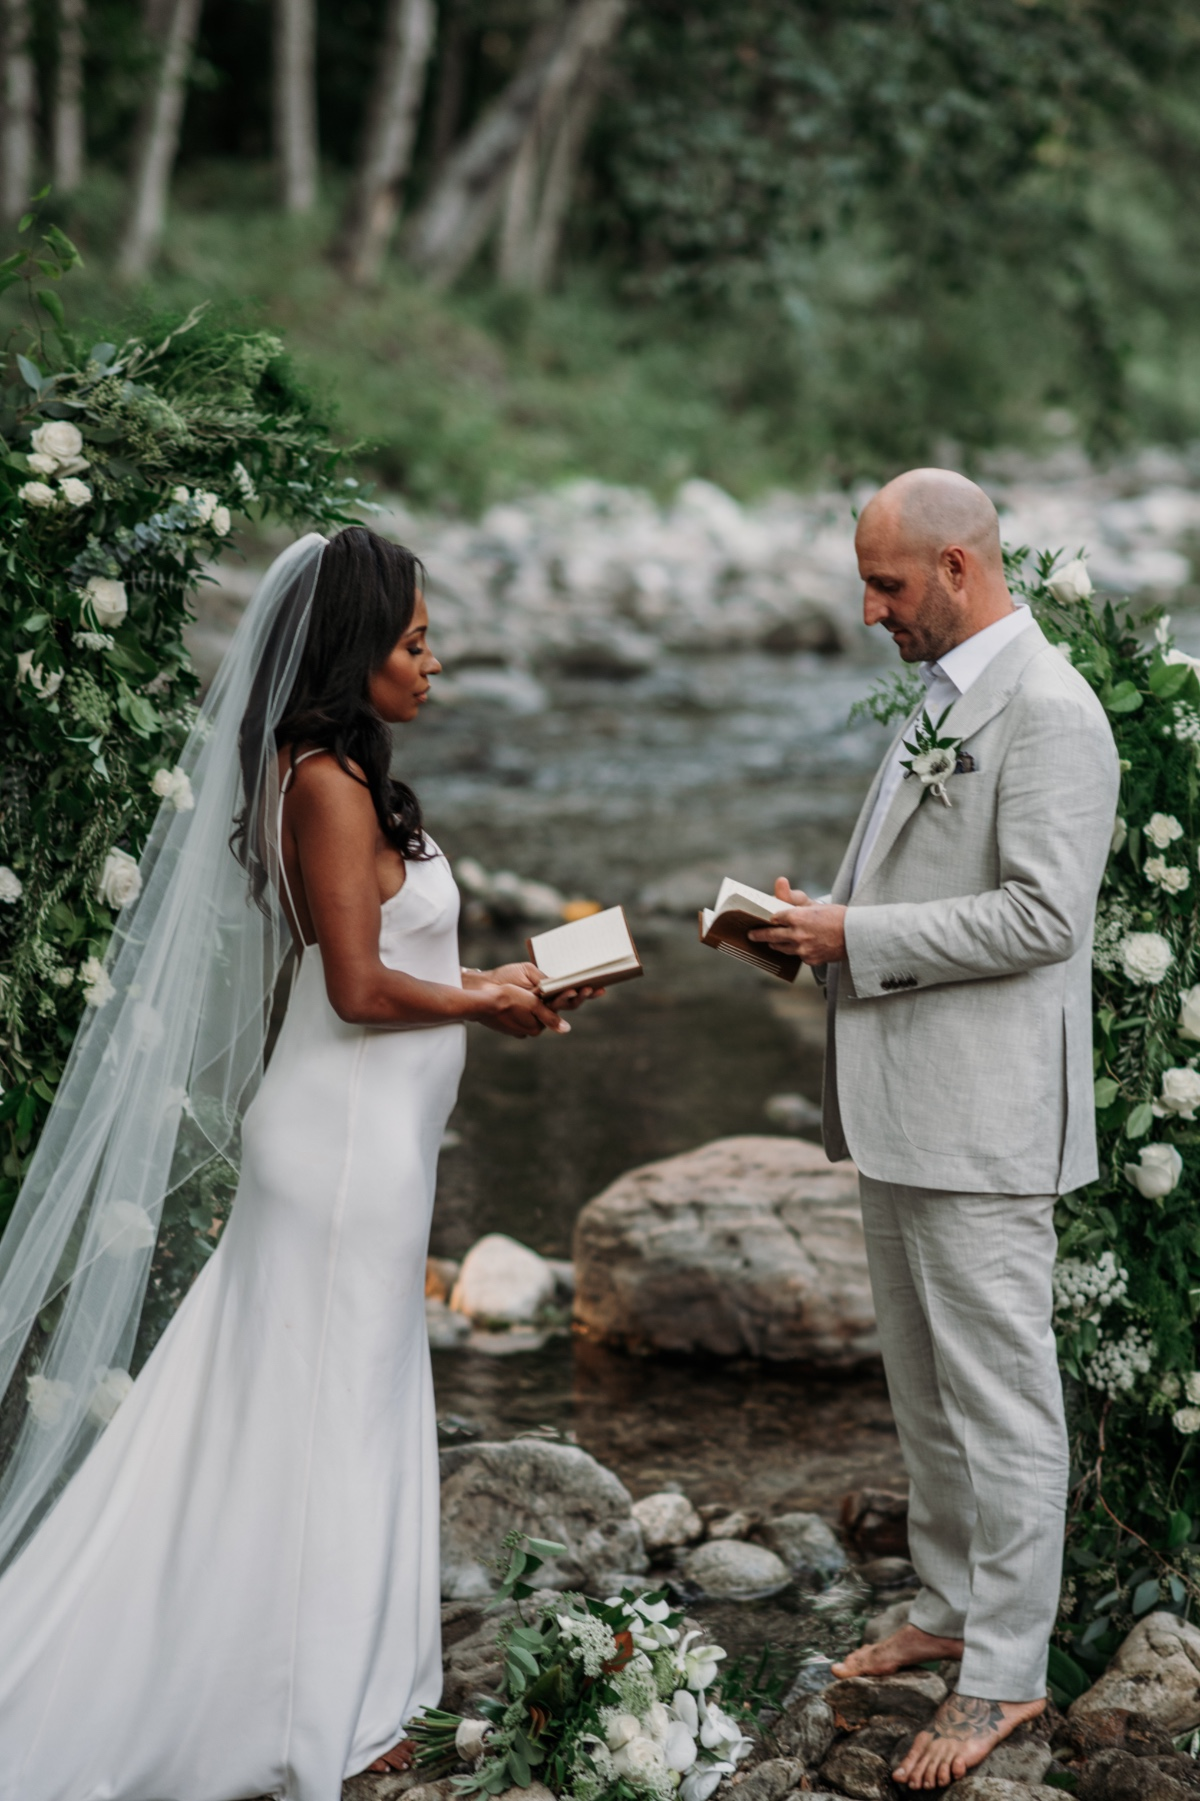 Ebony and Blake's Intimate Elopement Where they had their First Date